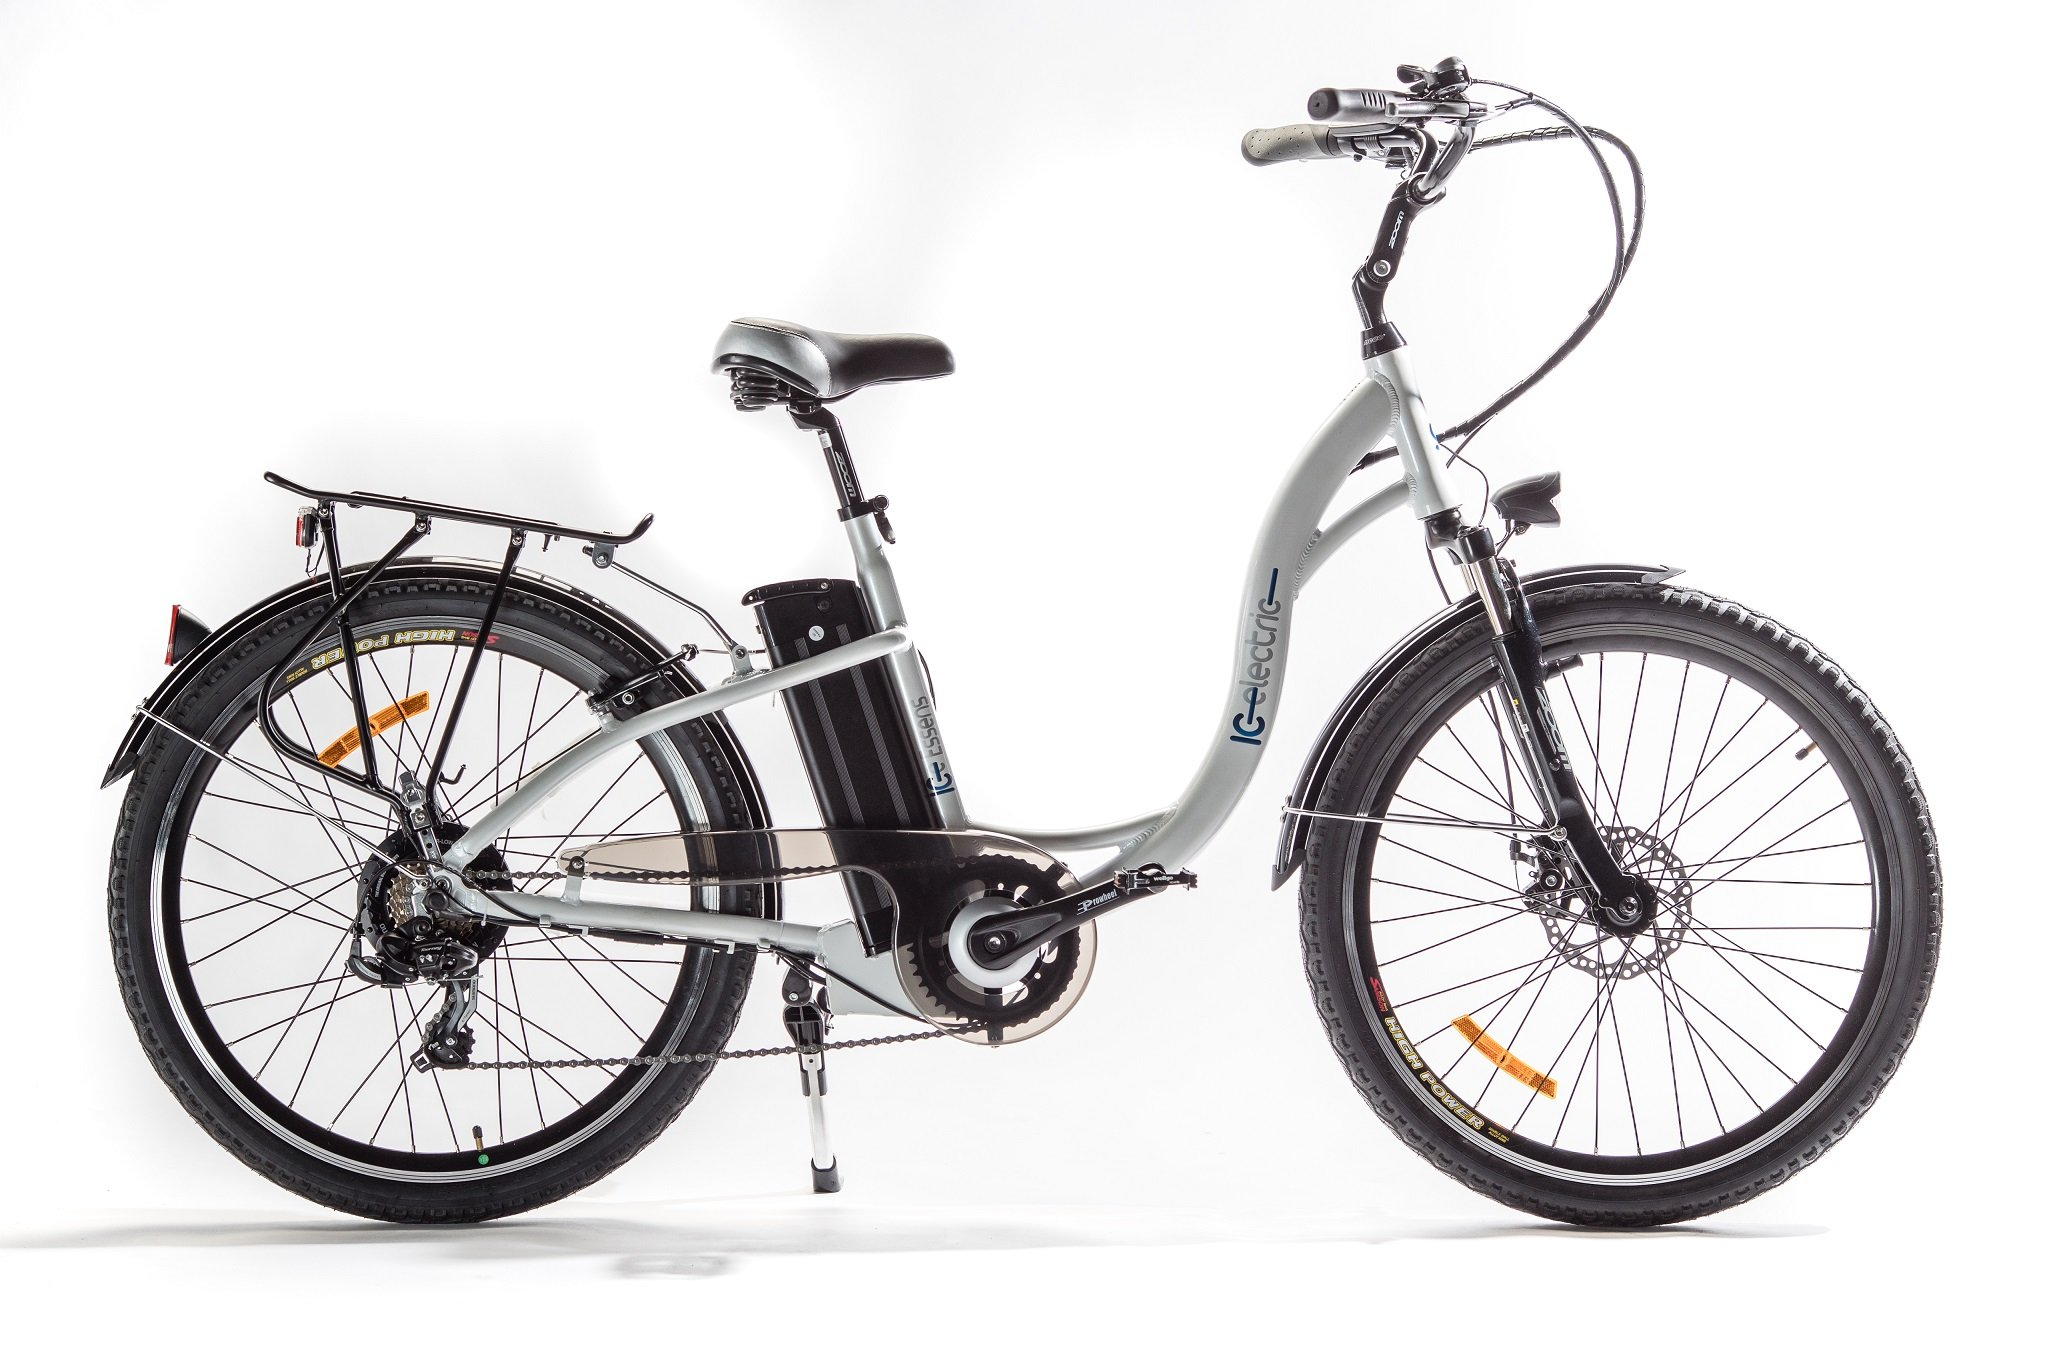 Bicicleta eléctrica Essens de IC Electric